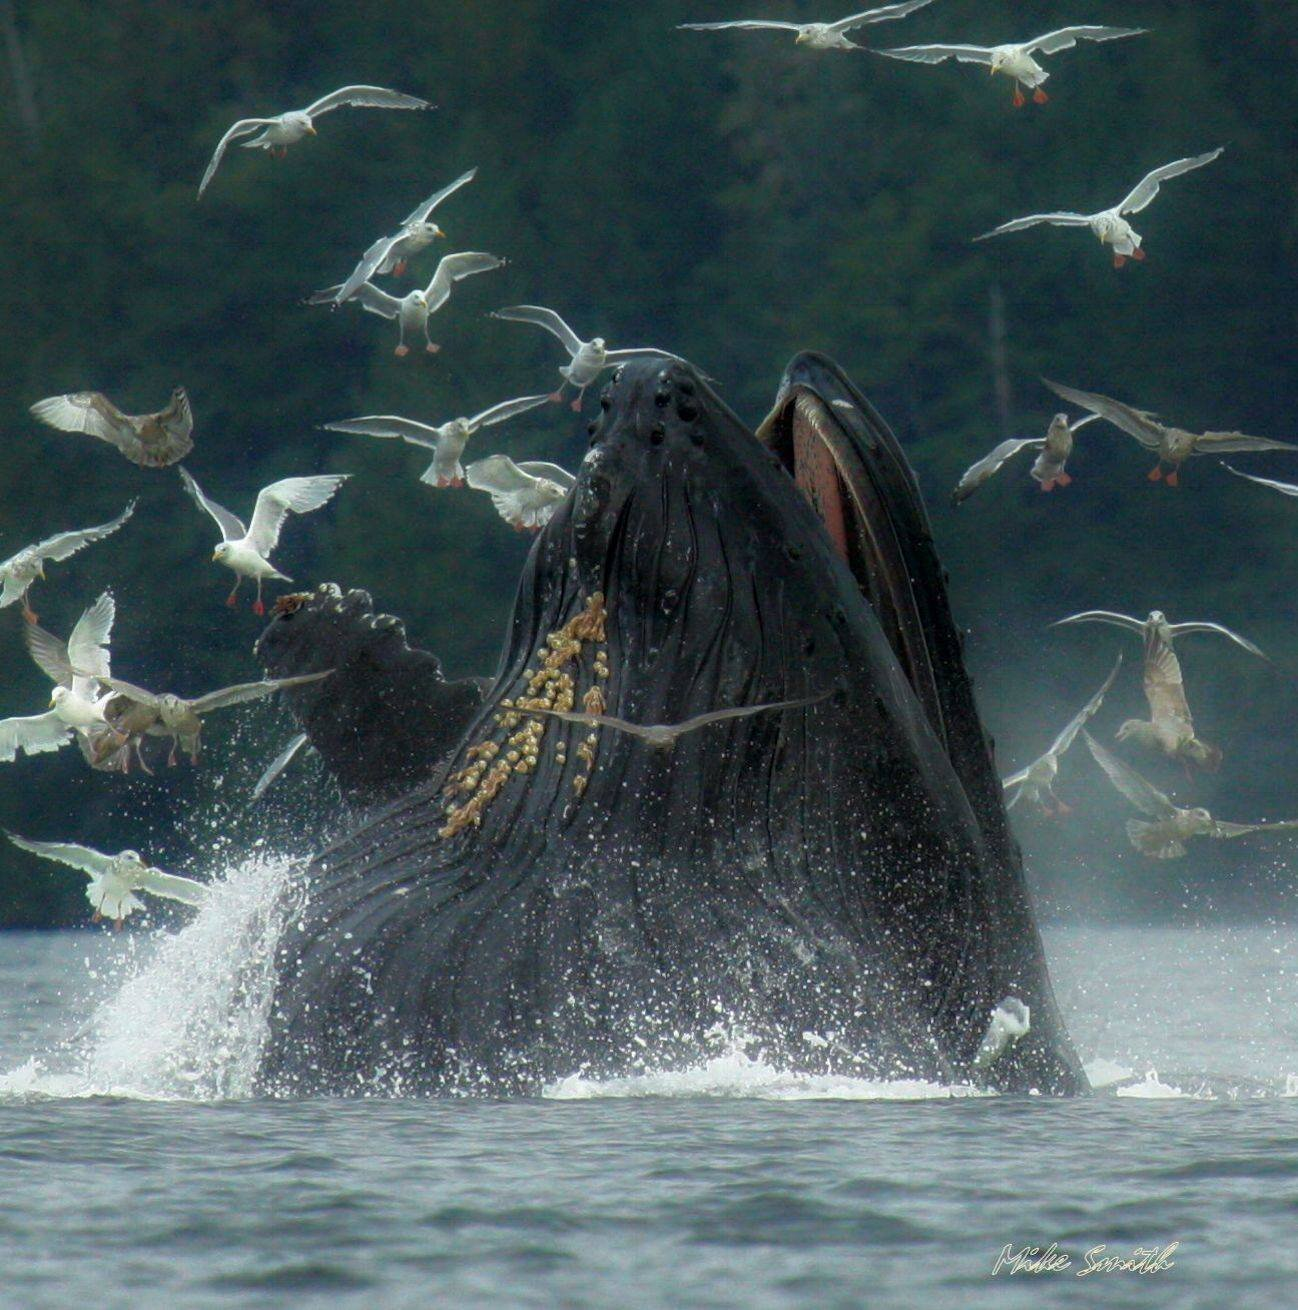 Humpback-whale-bubble-net-feeding-Mike-Smith-Alexander-Archipelago-Alaska.jpg